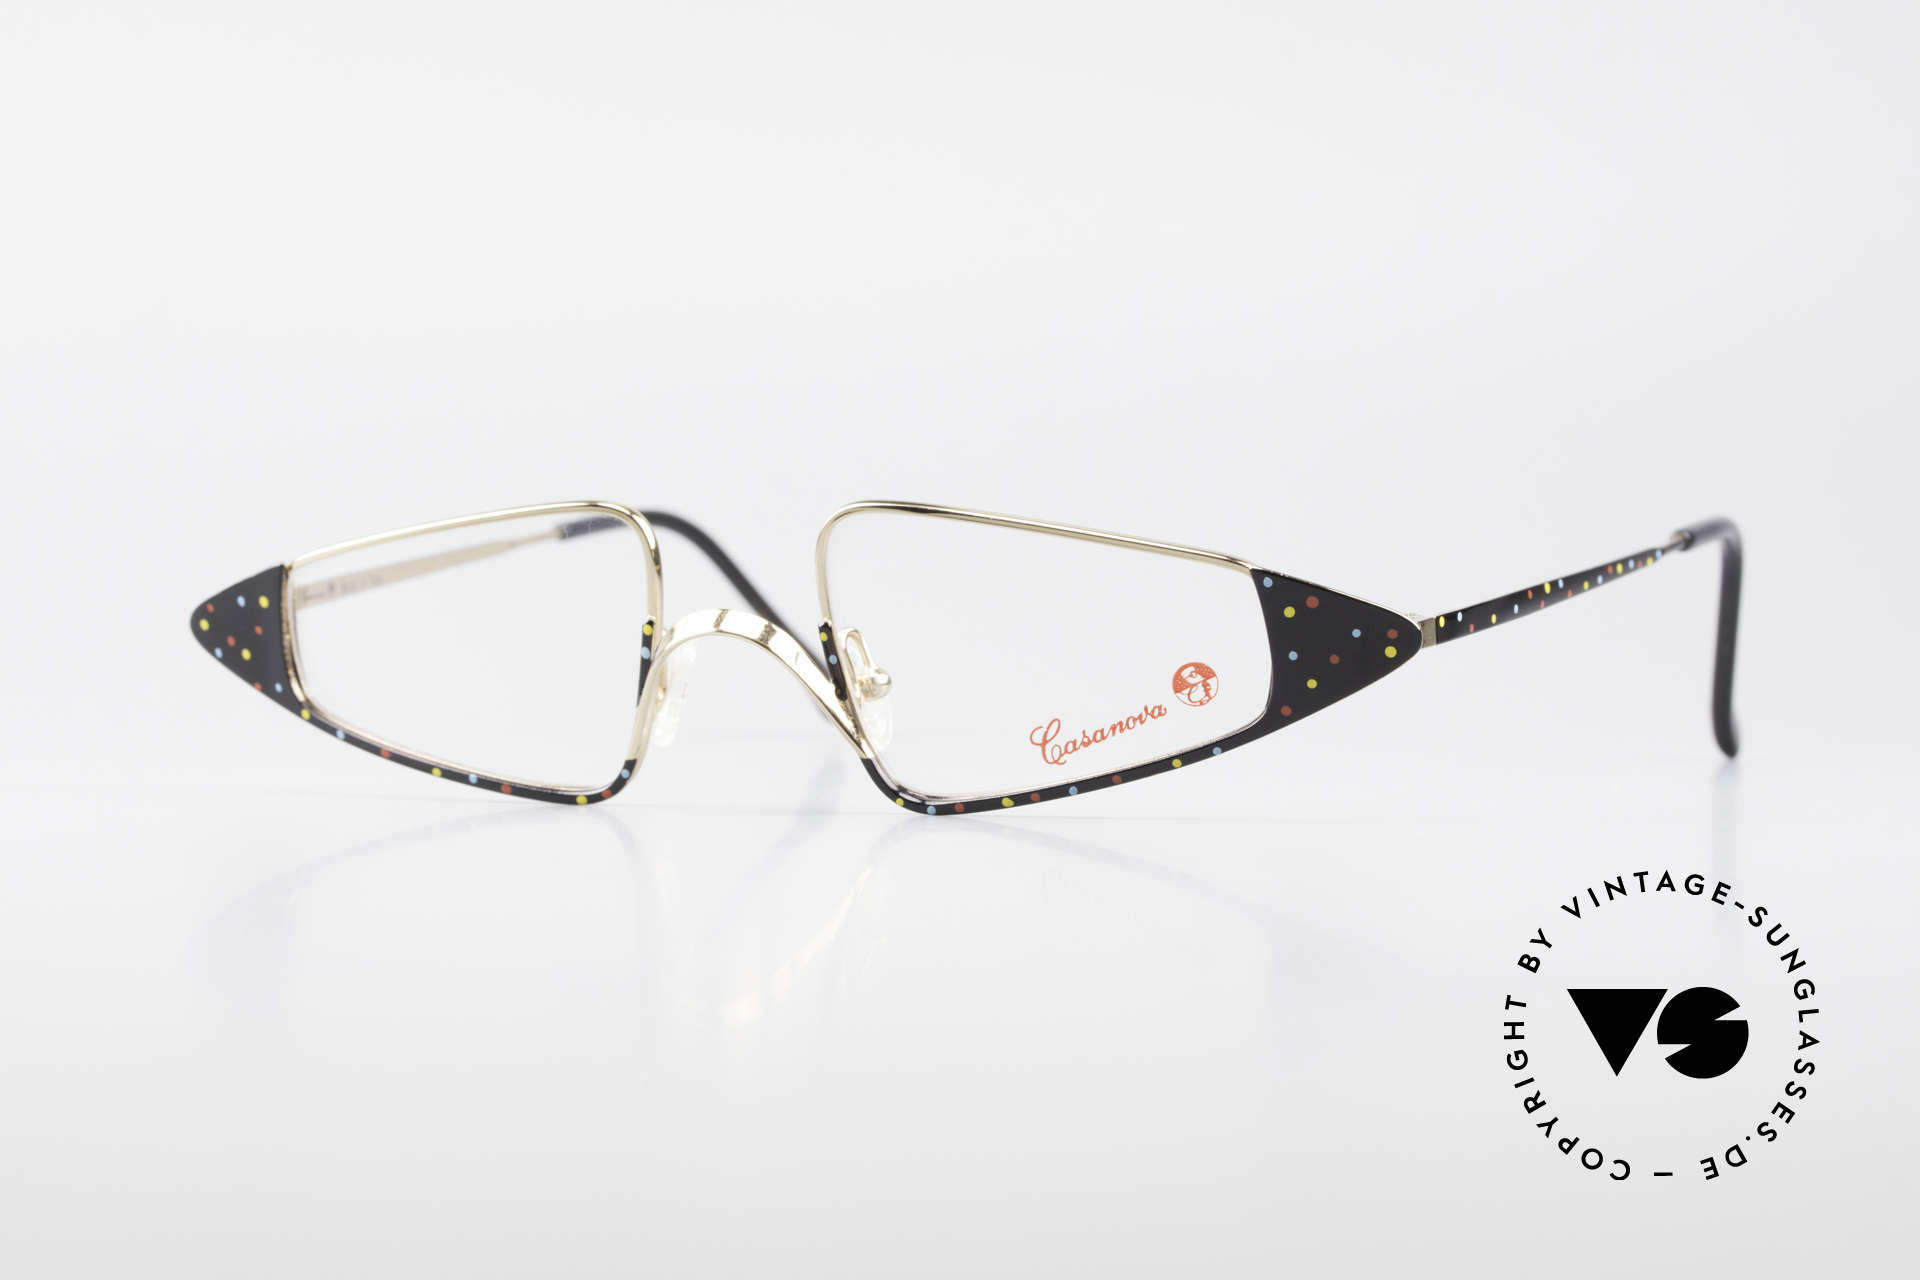 Casanova FC15 Fancy Vintage Reading Frame, glamorous Casanova eyeglass-frame from around 1985, Made for Women